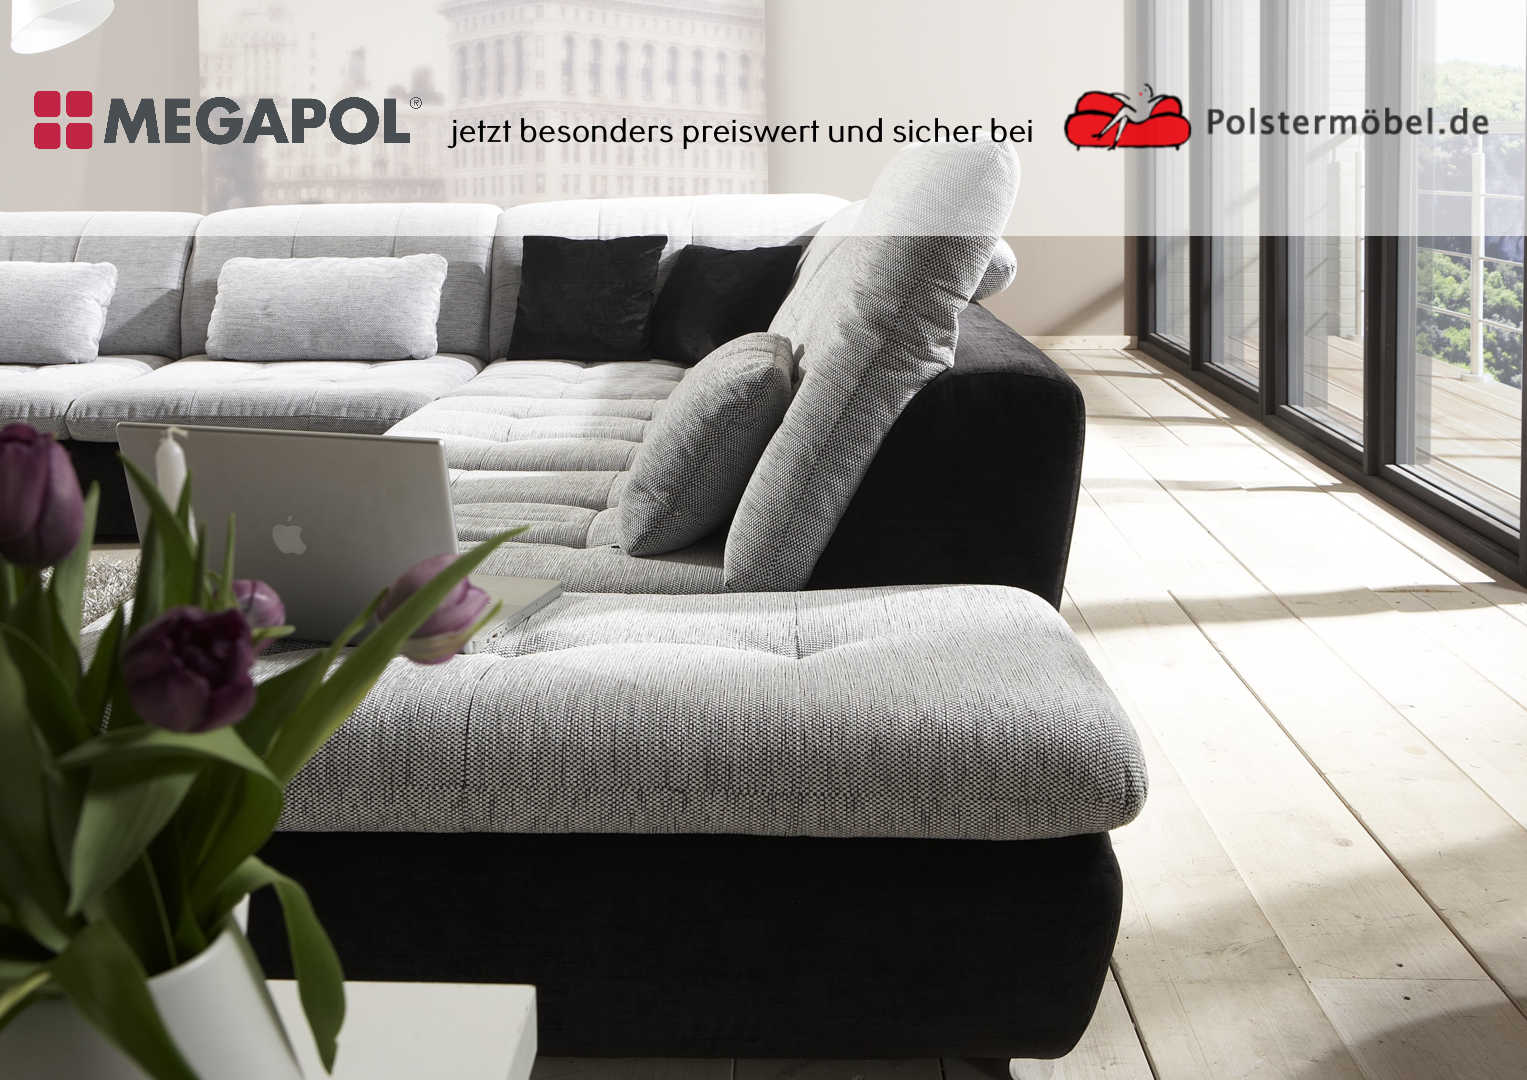 megapol sofa fabulous megapol u die junge mbelmarke mit tollen funktionen und modernem design. Black Bedroom Furniture Sets. Home Design Ideas